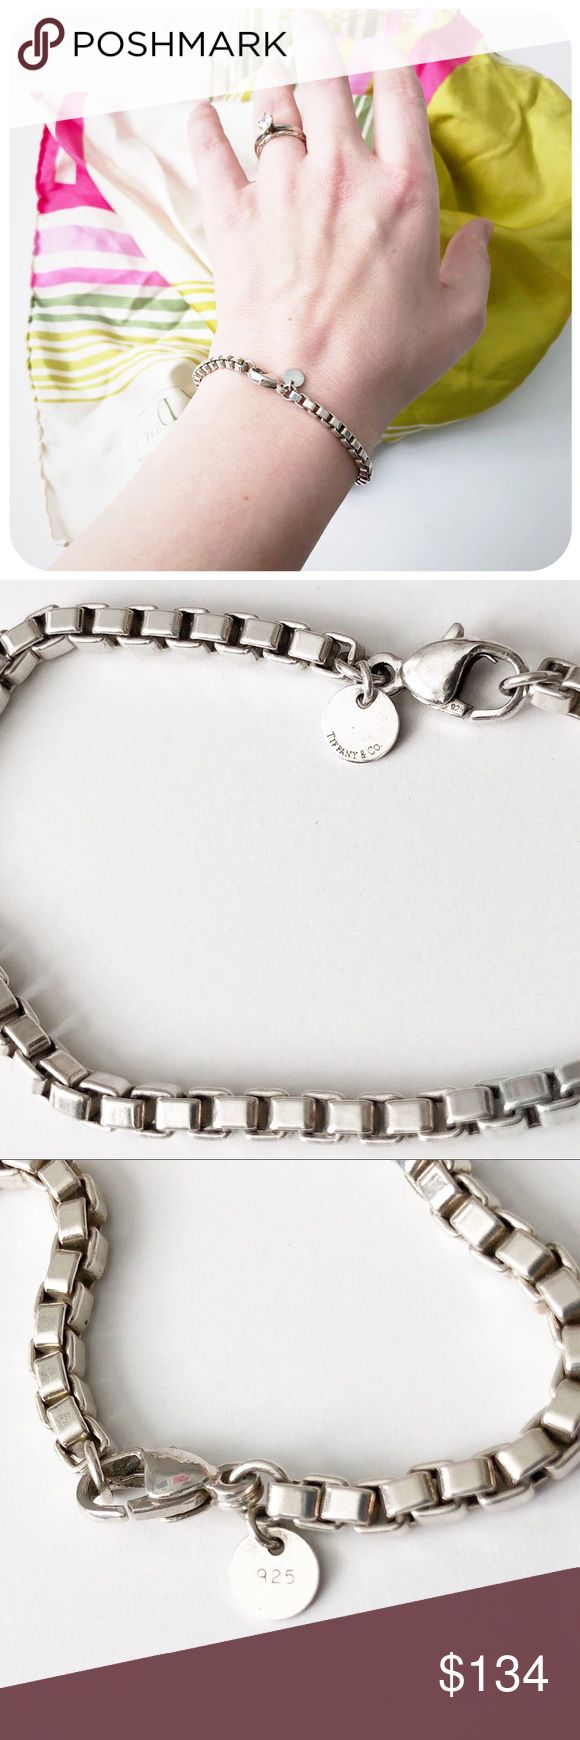 """{{ Tiffany & Co }} Sterling Venetian Link Chain Authentic Tiffany & Co. 'Venetian Link' box chain sterling silver bracelet. Round hang tag with 'Tiffany & Co' and '925' stamps. Clasp also stamped 925.  {{ CONDITION }} Excellent - minor patina and scuffing, original blue bag and box not included  {{ MEASUREMENTS }} Length - 7.5""""  {{ TAGS }} luxury tennis classic preppy square tiffanys jewelry engagement valentine's return to gift feminine pretty designer charm modern present timeless heart…"""